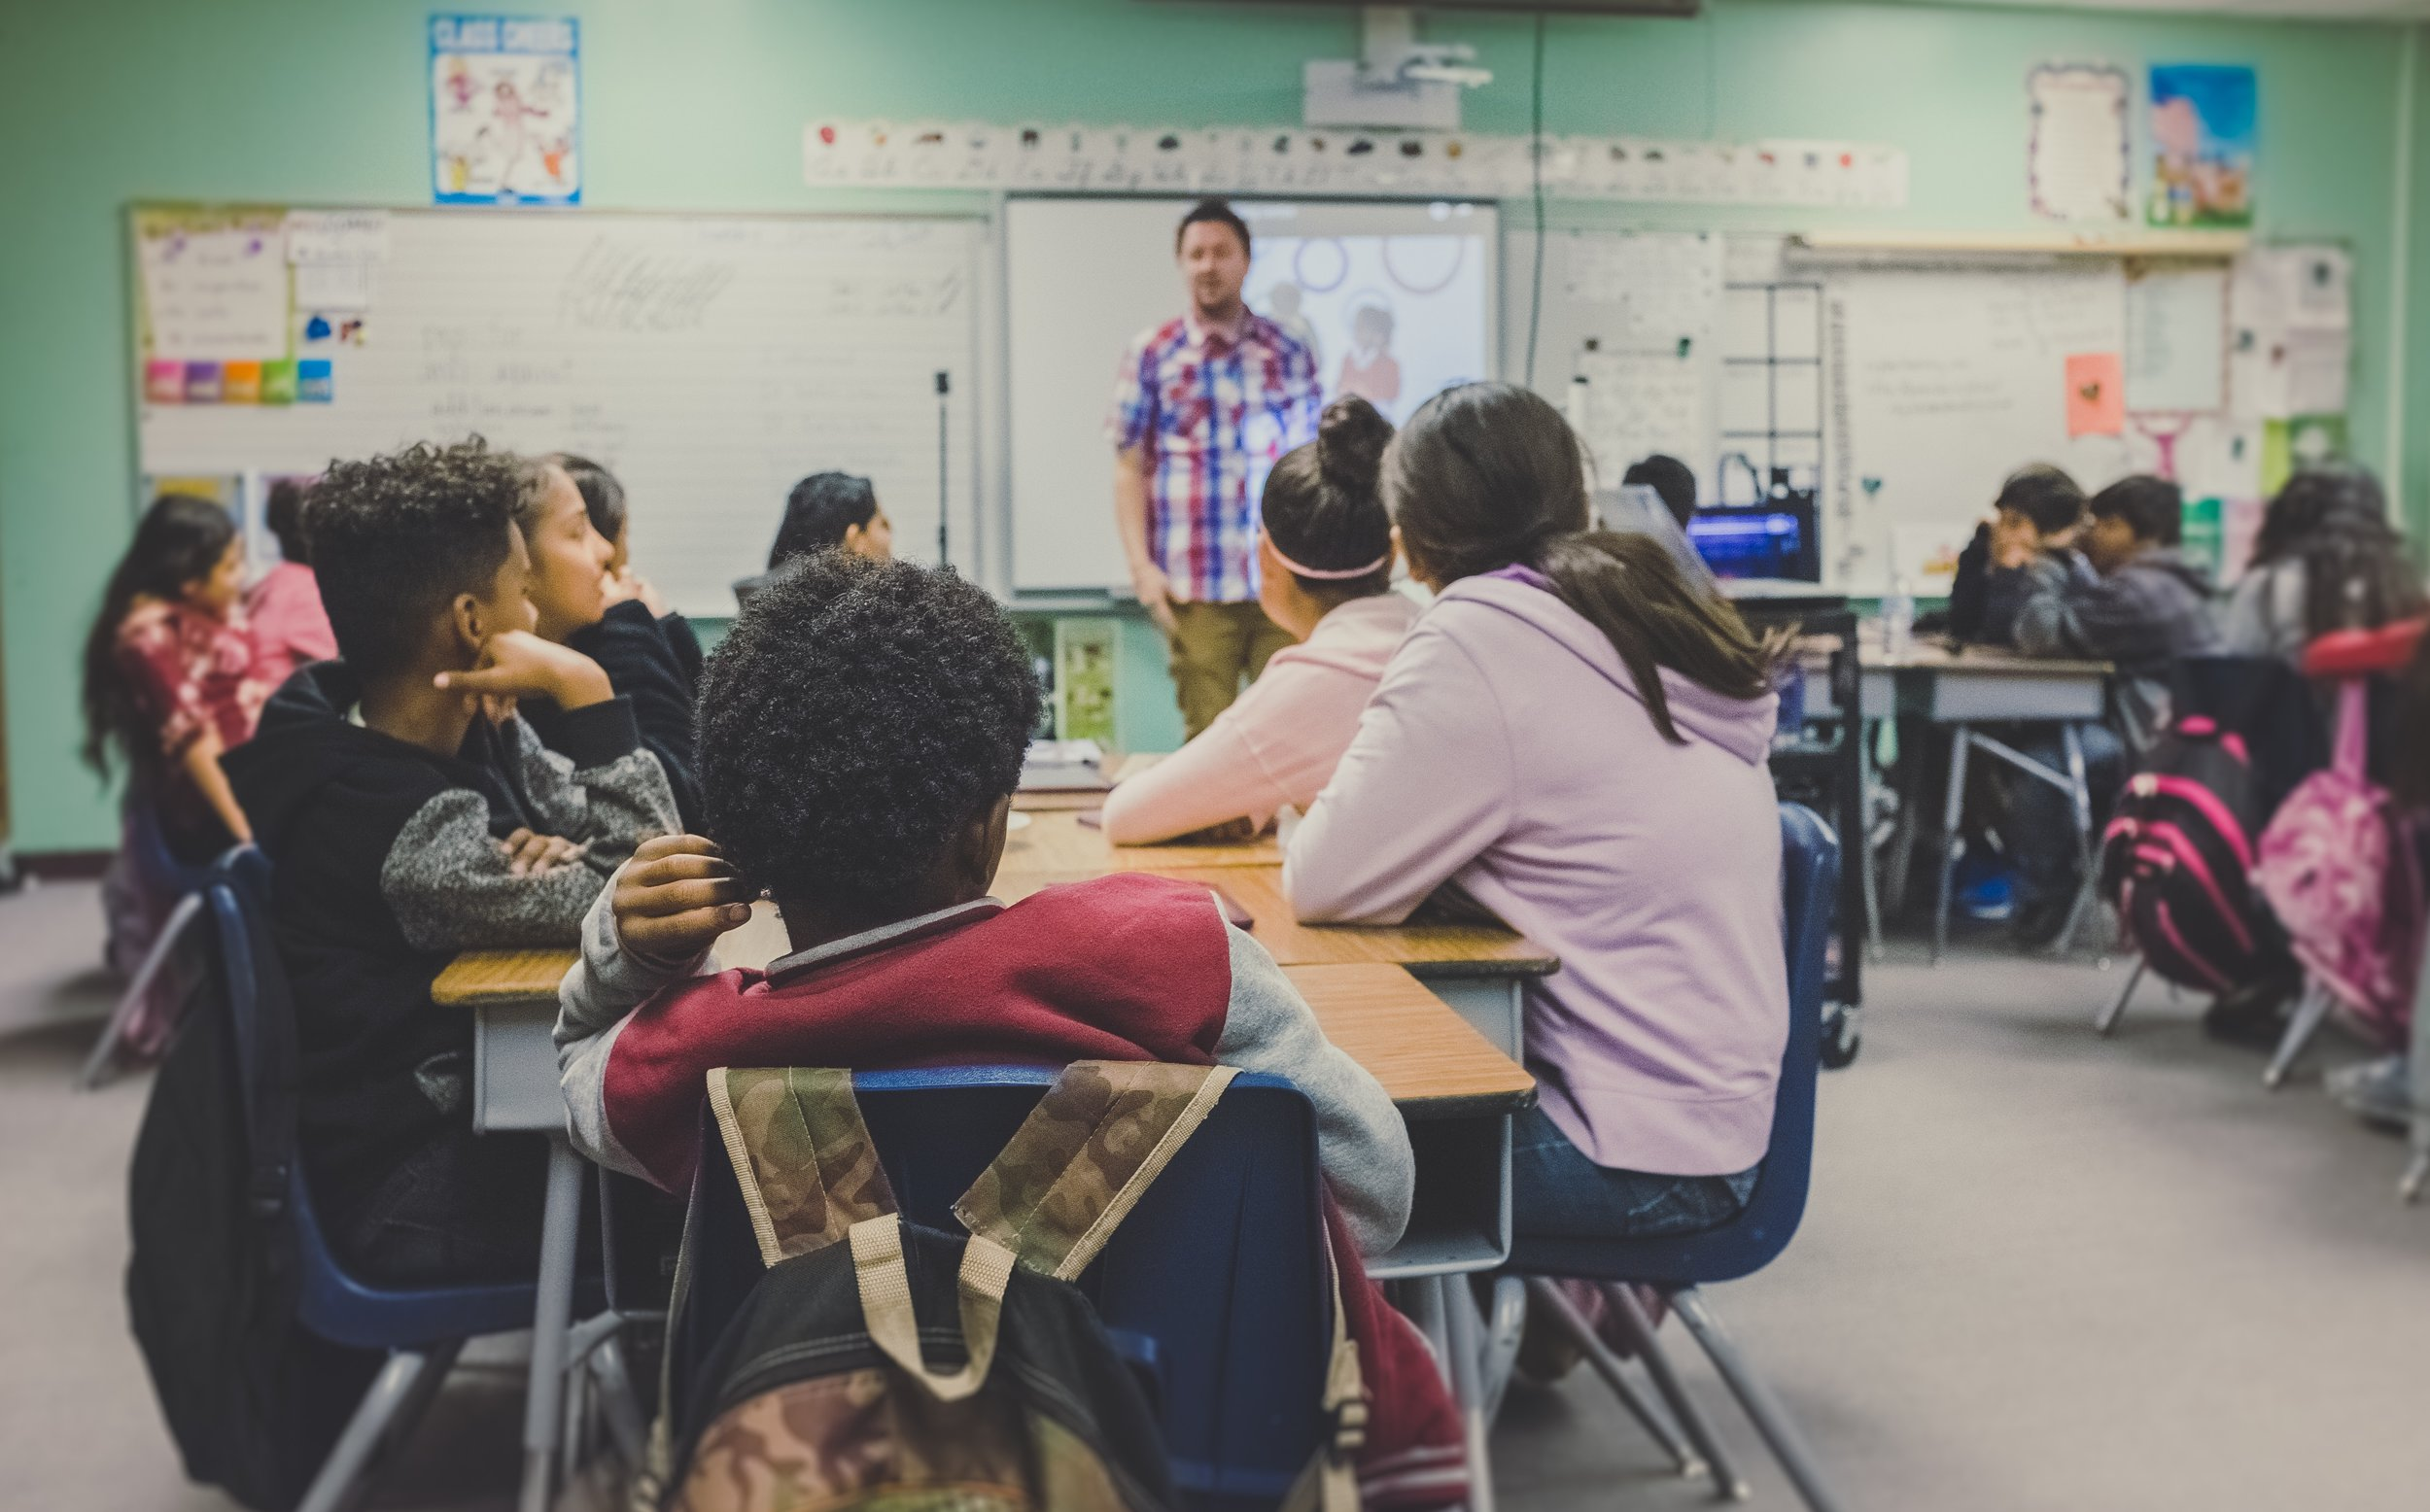 Education - There is a longstanding collaboration between HBR and our Public Education System. Education is critical to the success of our children and fills the needs of companies today and of the future Innovation Economy.